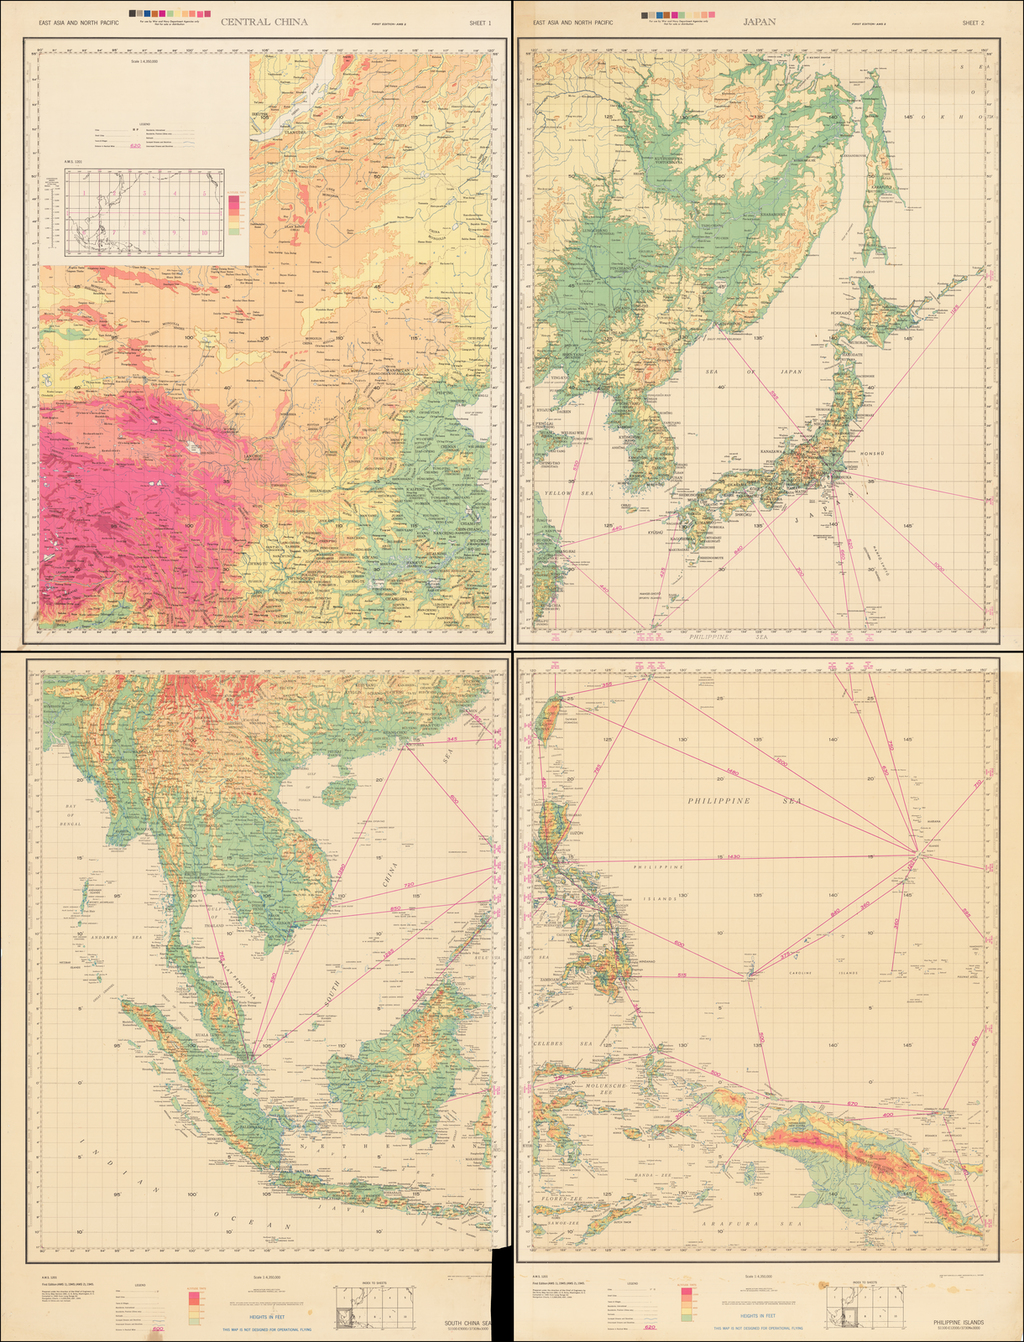 (Second World War - East Asia) [China, Philippines, Japan, Korea, Indonesia, Malaysia, Thailand, Vietnam, etc.]  East Asia and North Pacific By U.S. Army